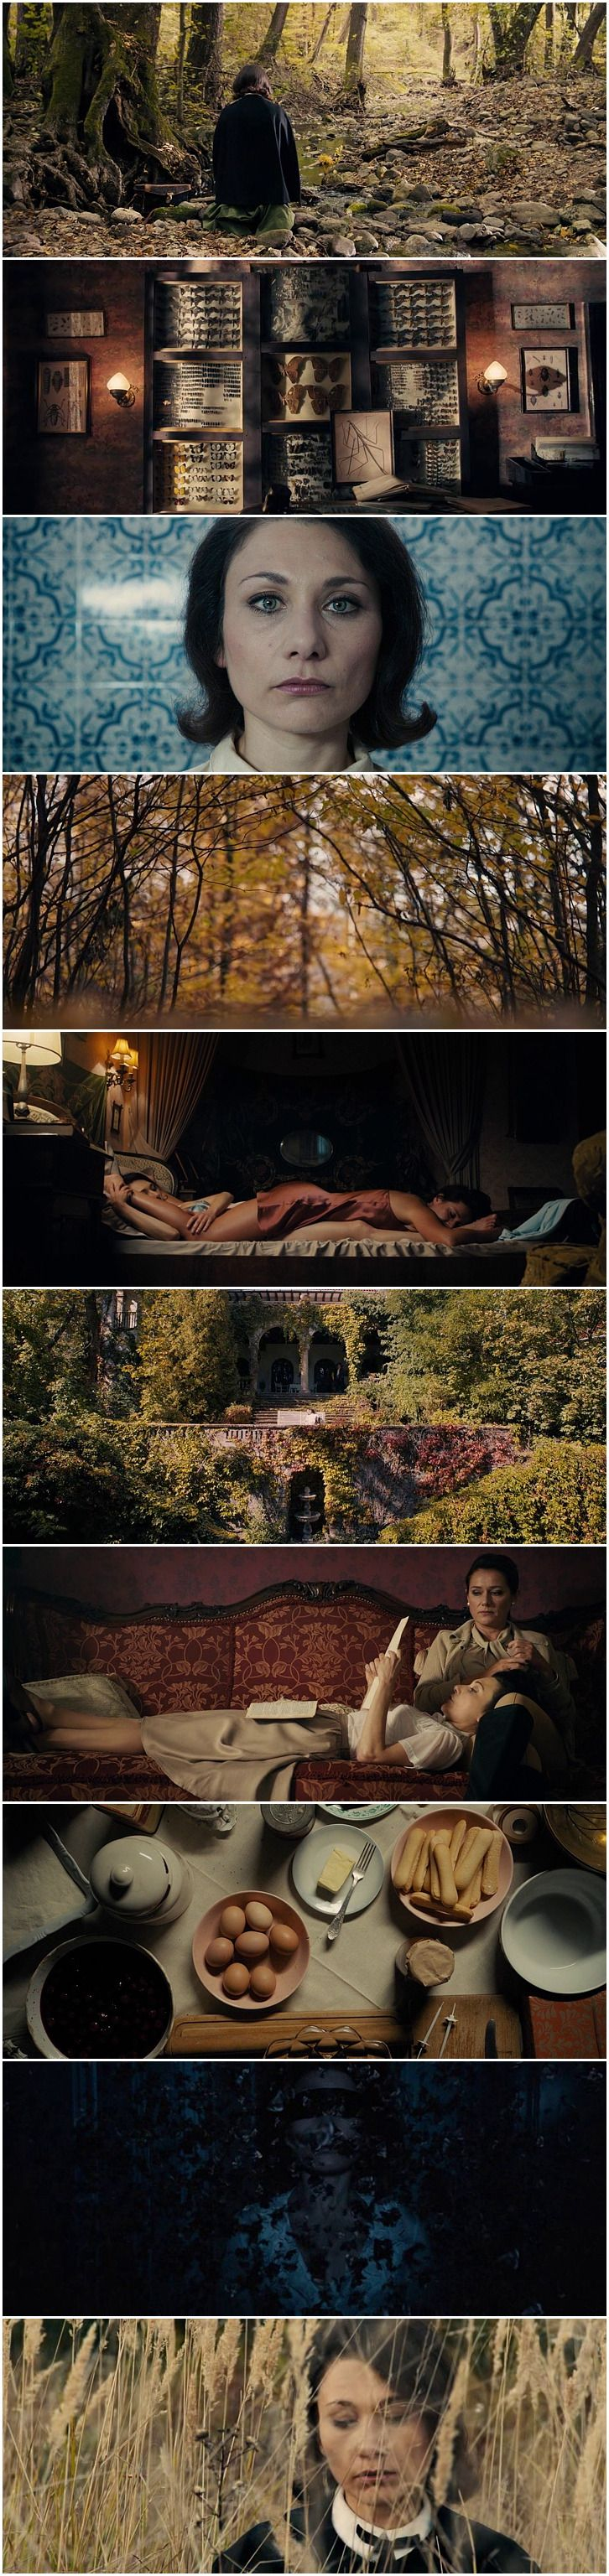 The Duke of Burgundy (2014) || Directed by Peter Strickland || Cinematography by Nic Knowland